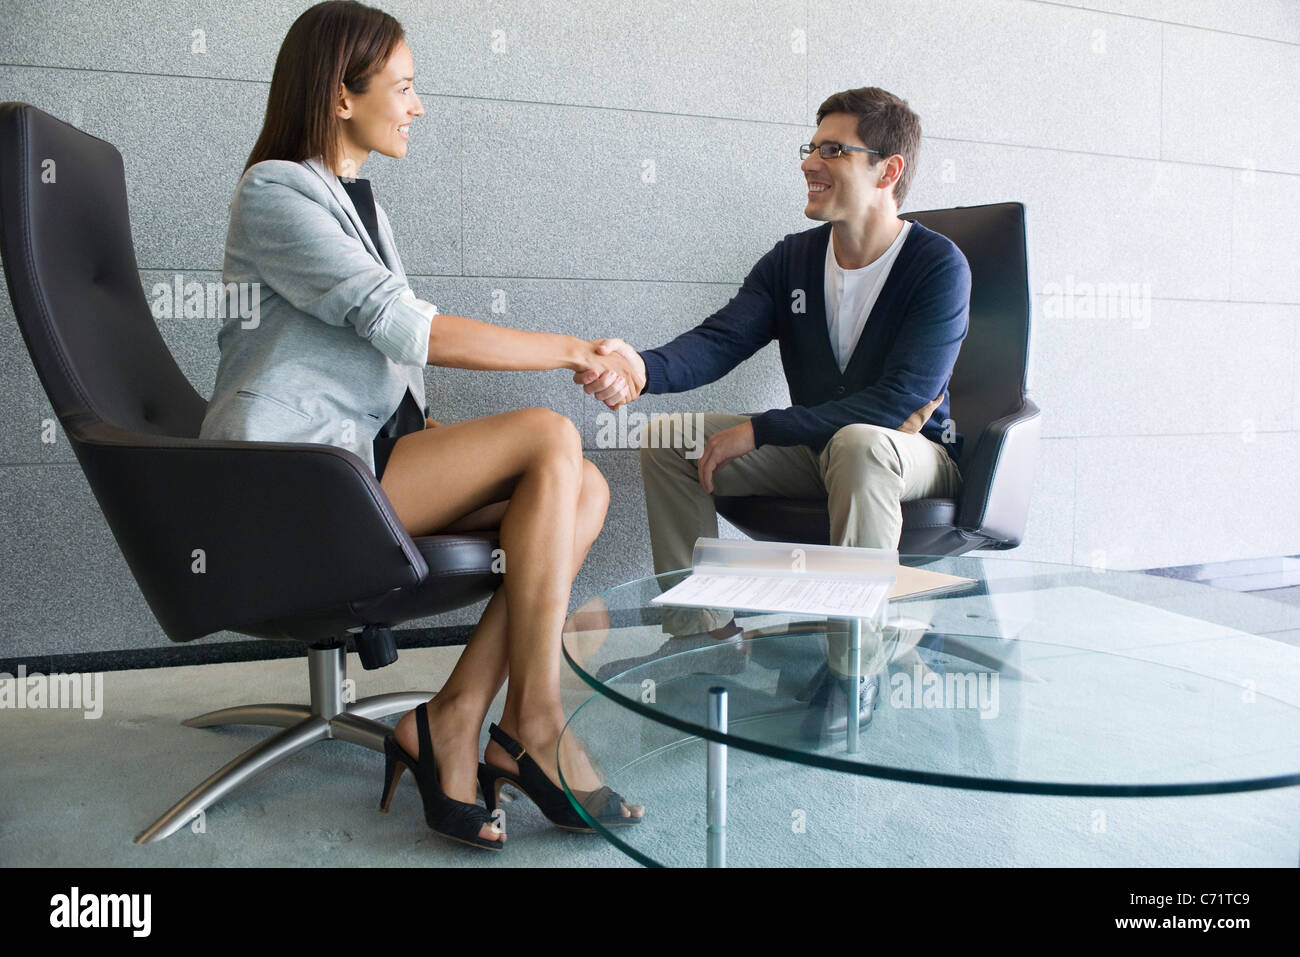 Businesswoman shaking hands with client - Stock Image